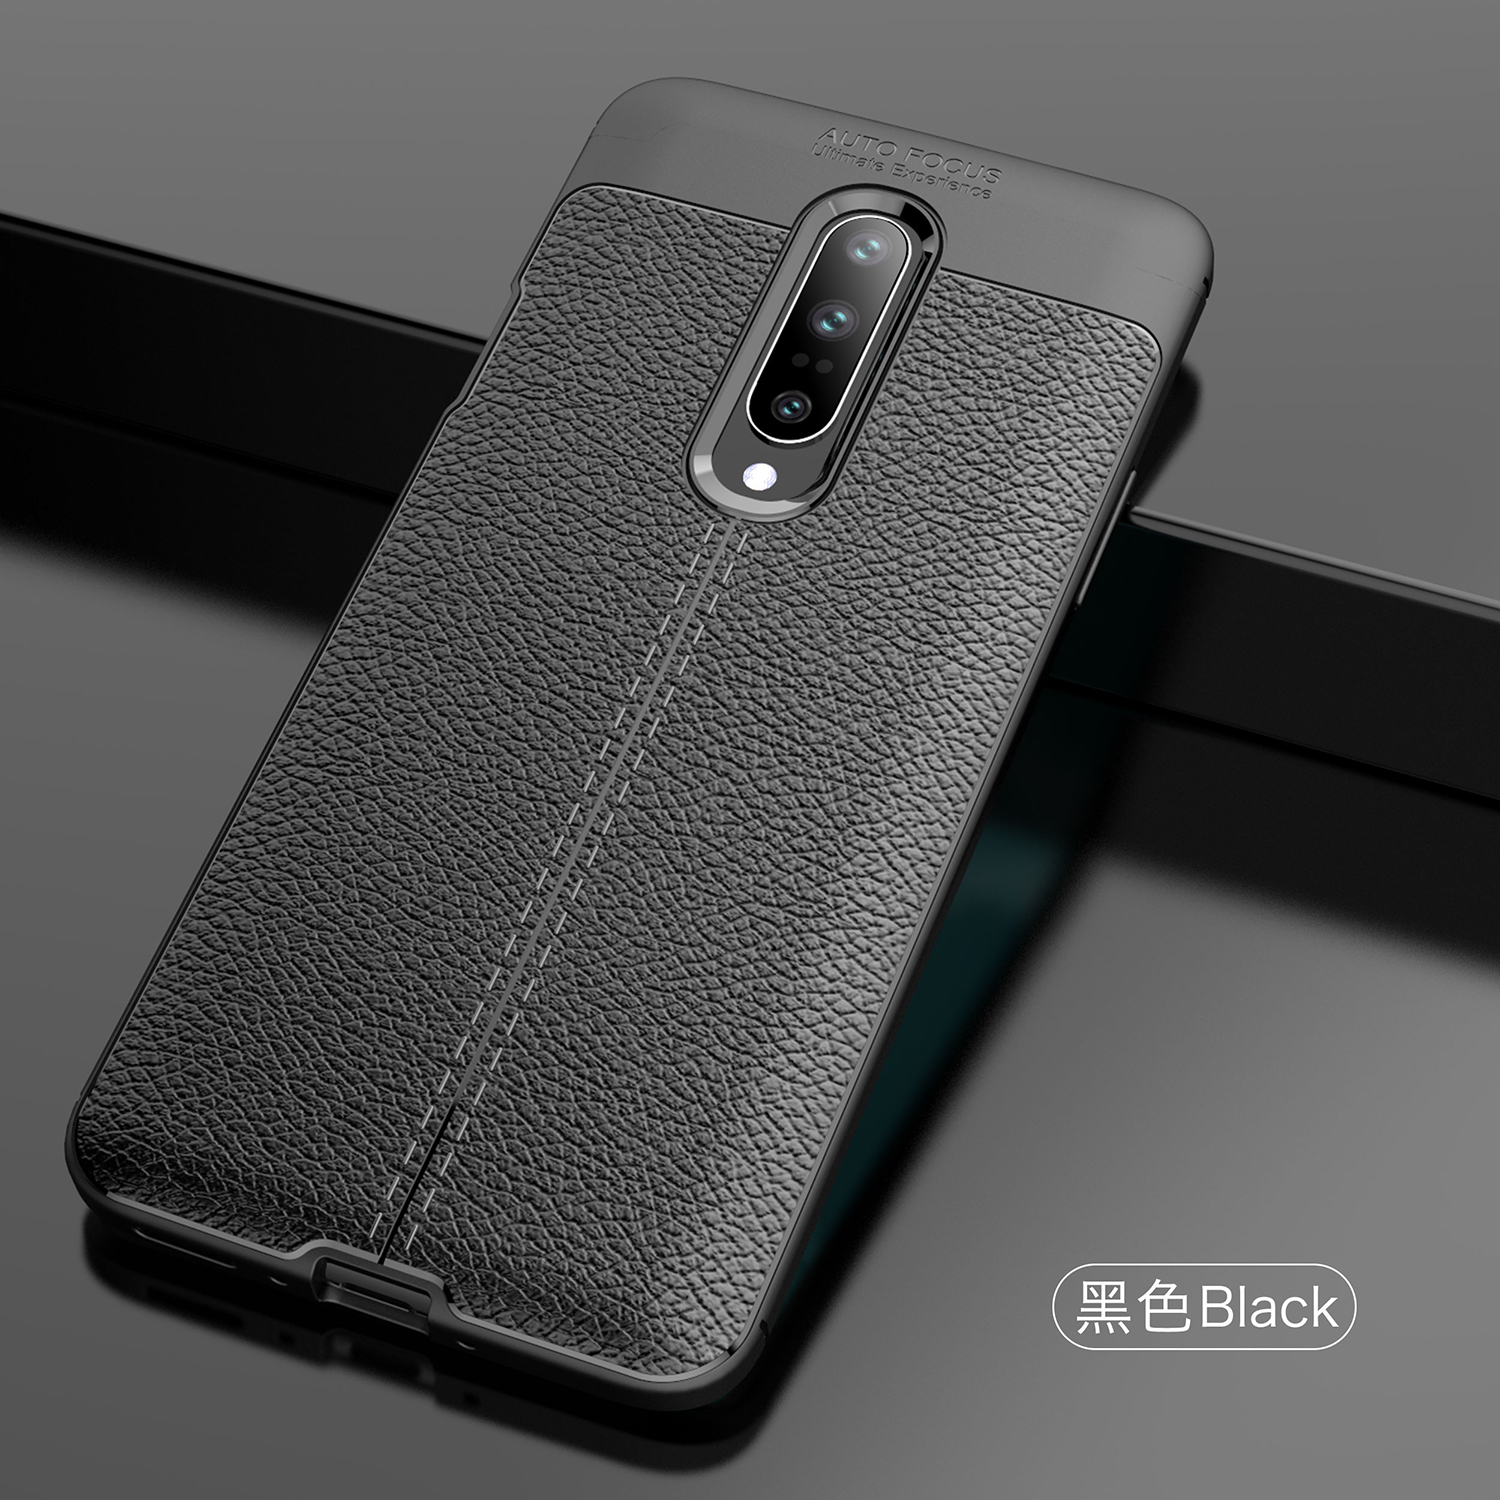 Wolfsay Soft TPU Case For OnePlus 7 Pro Leather Texture Silicone Phone Cover Business Coque